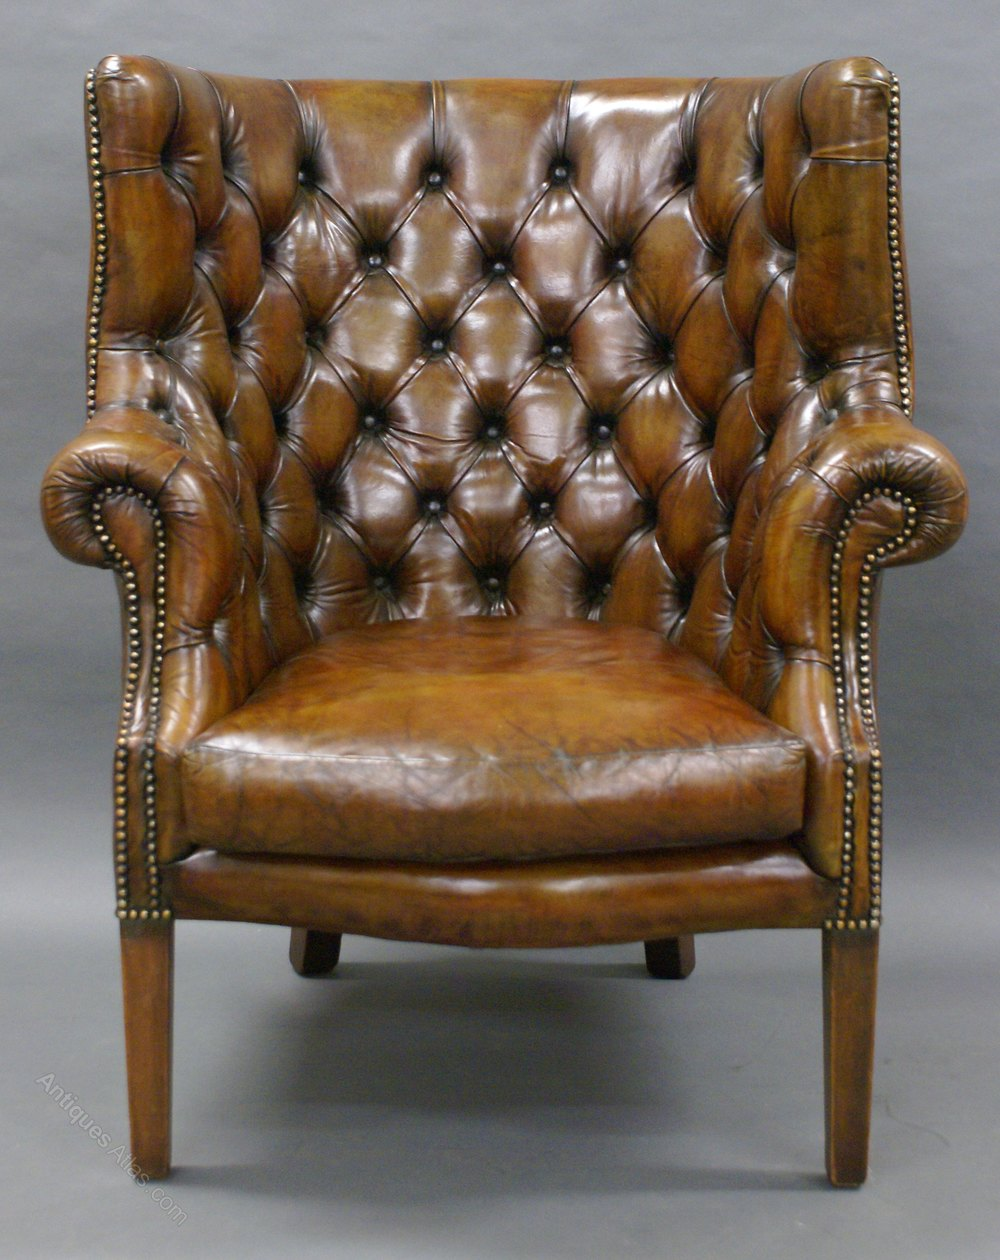 Antique barrel chair -  Antique Barrel Back Armchairs Arm Chair Wing Chair Leather